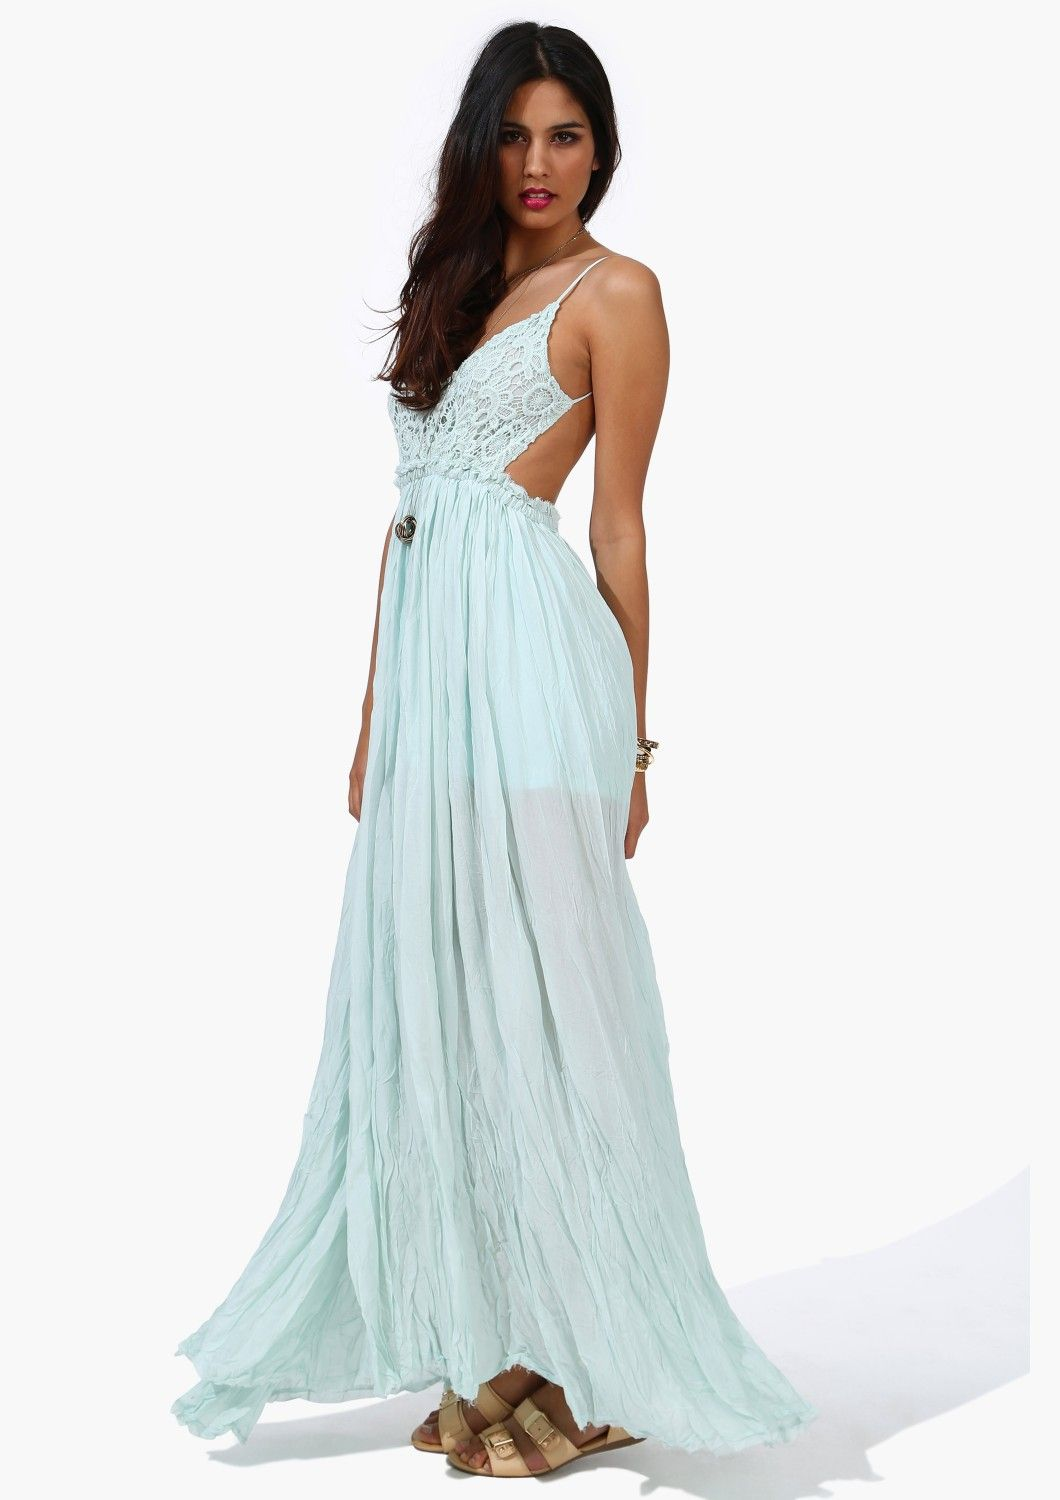 Sway Maxi Dress in Sky Blue | Music Festival and Concert Fashion ...